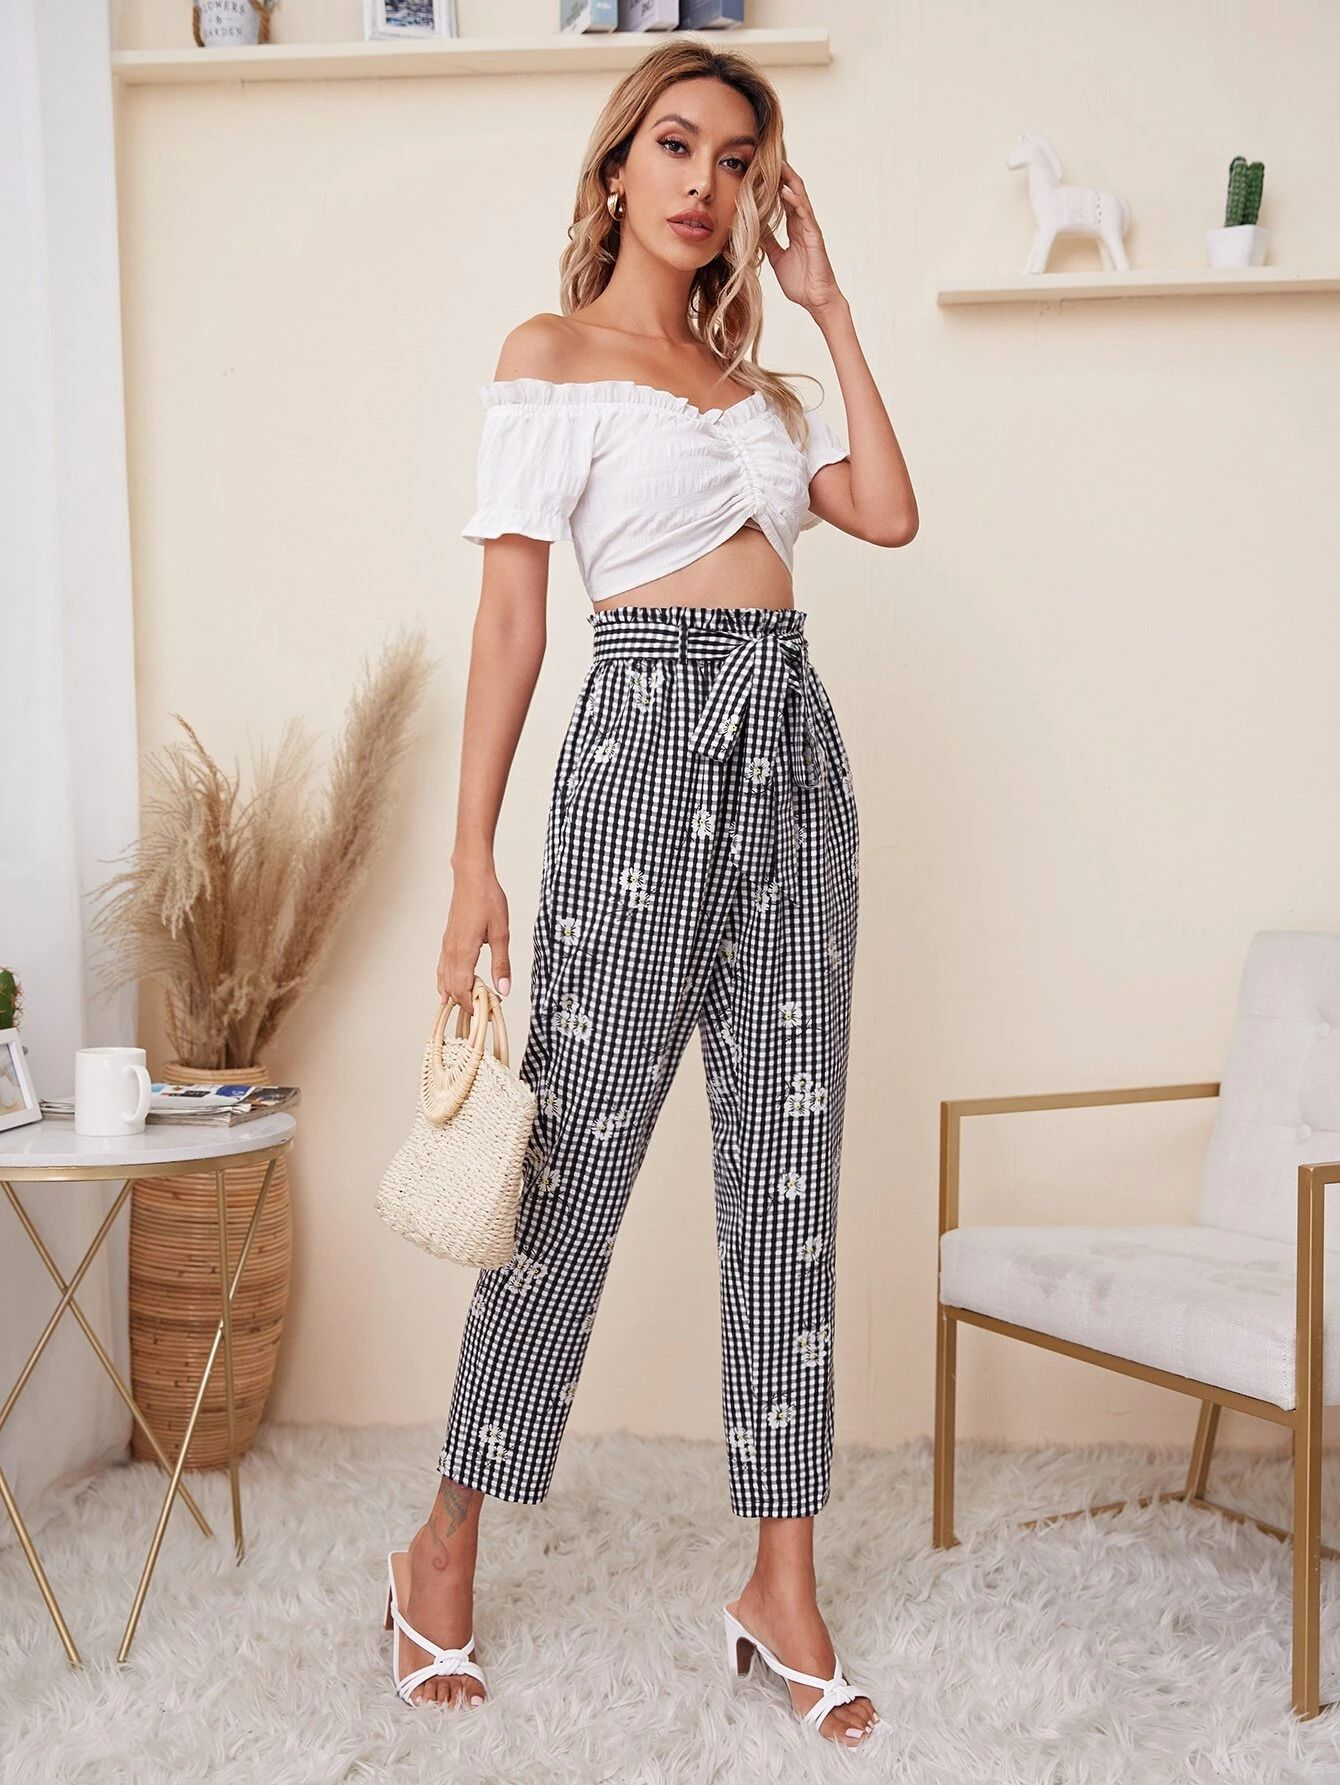 SHEIN Paperbag Waist Floral and Gingham Trousers